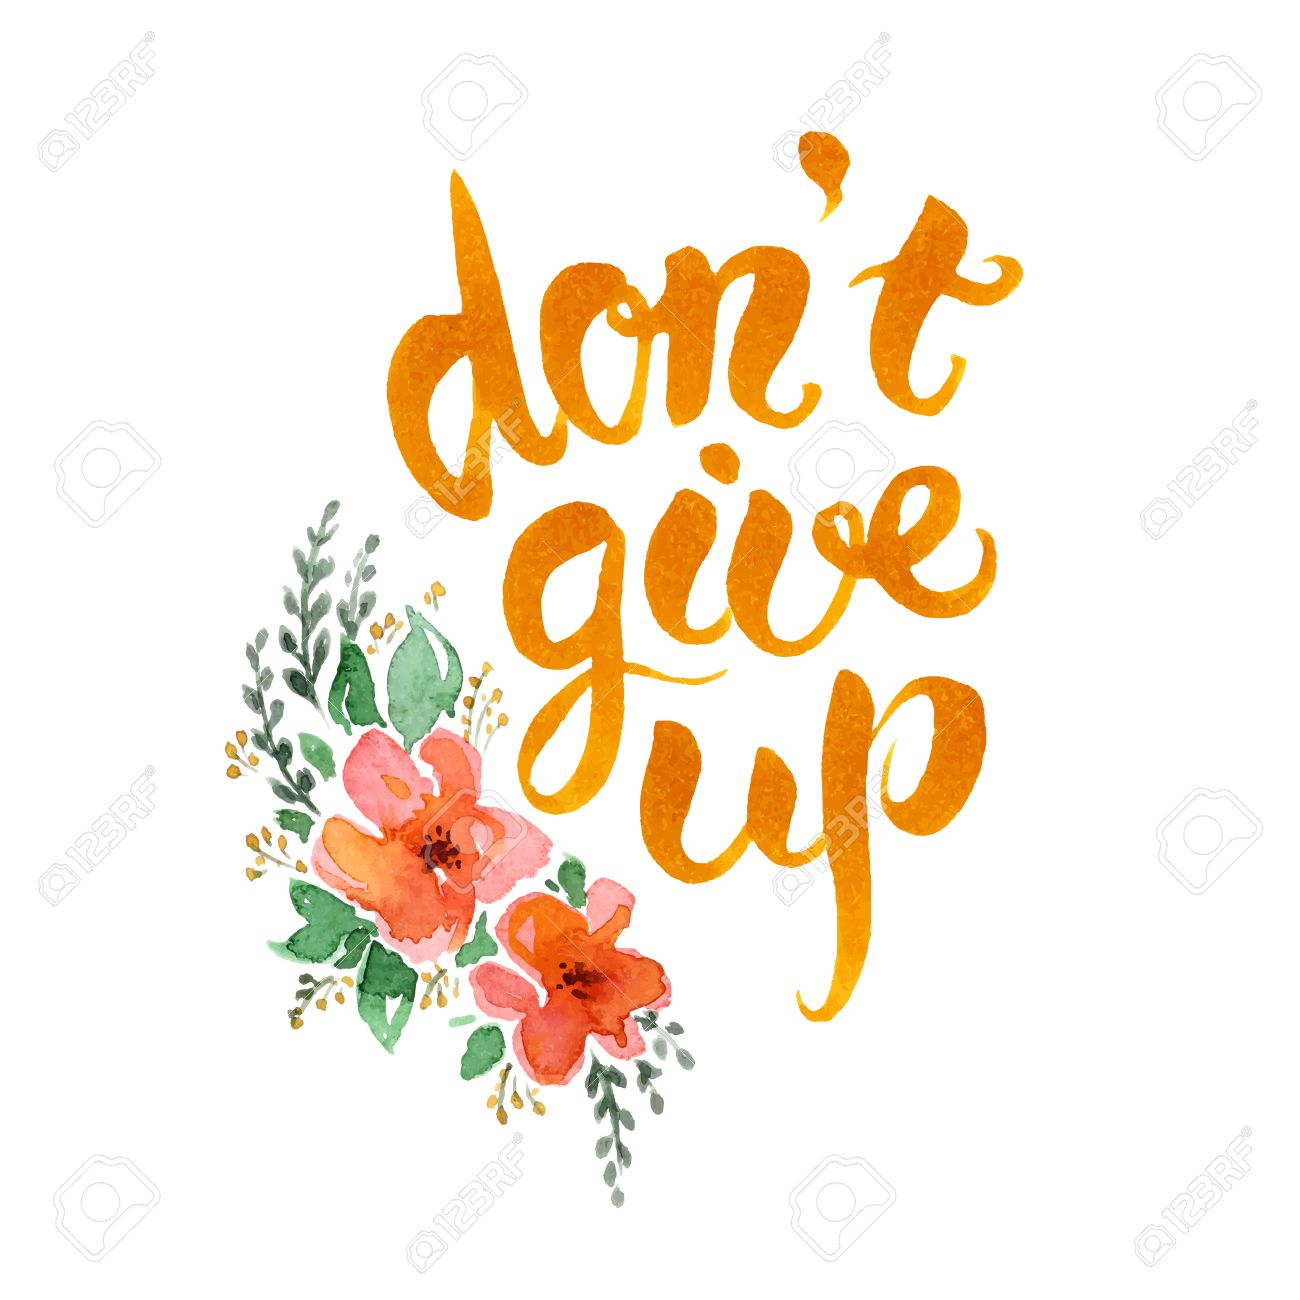 Dont Give Up Hand Drawn Letteringmotivational Watercolor Poster